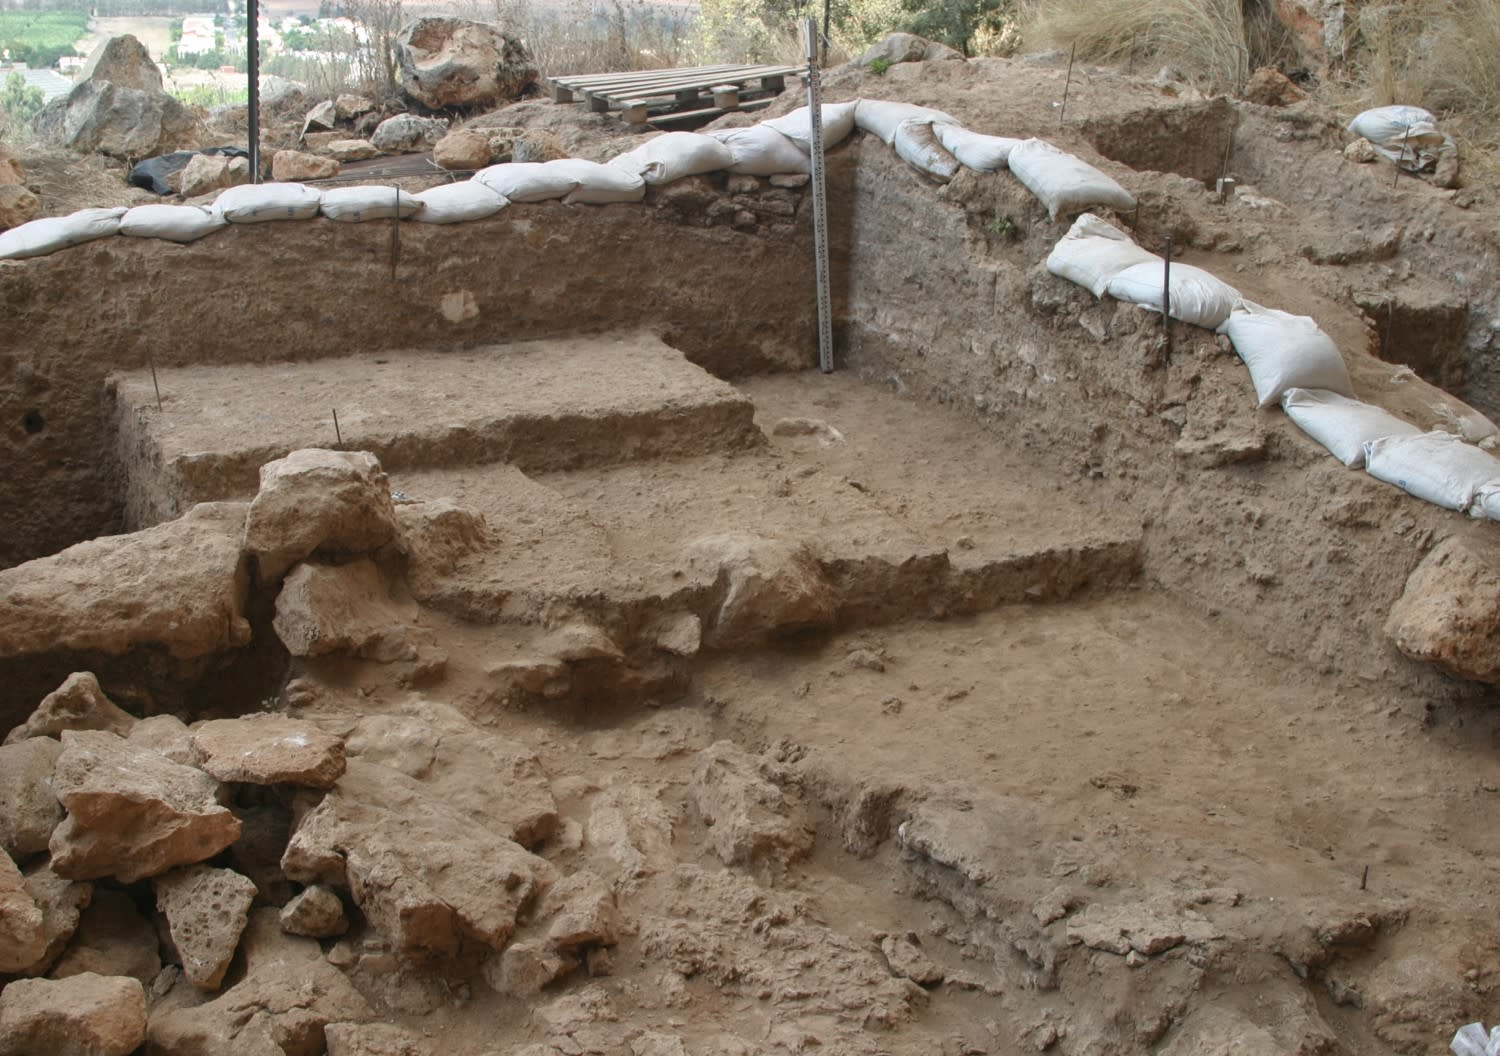 The excavated area where the fossil was found. (COURTESY OF MINA WEINSTEIN EVRON / HAIFA UNIVERSITY)